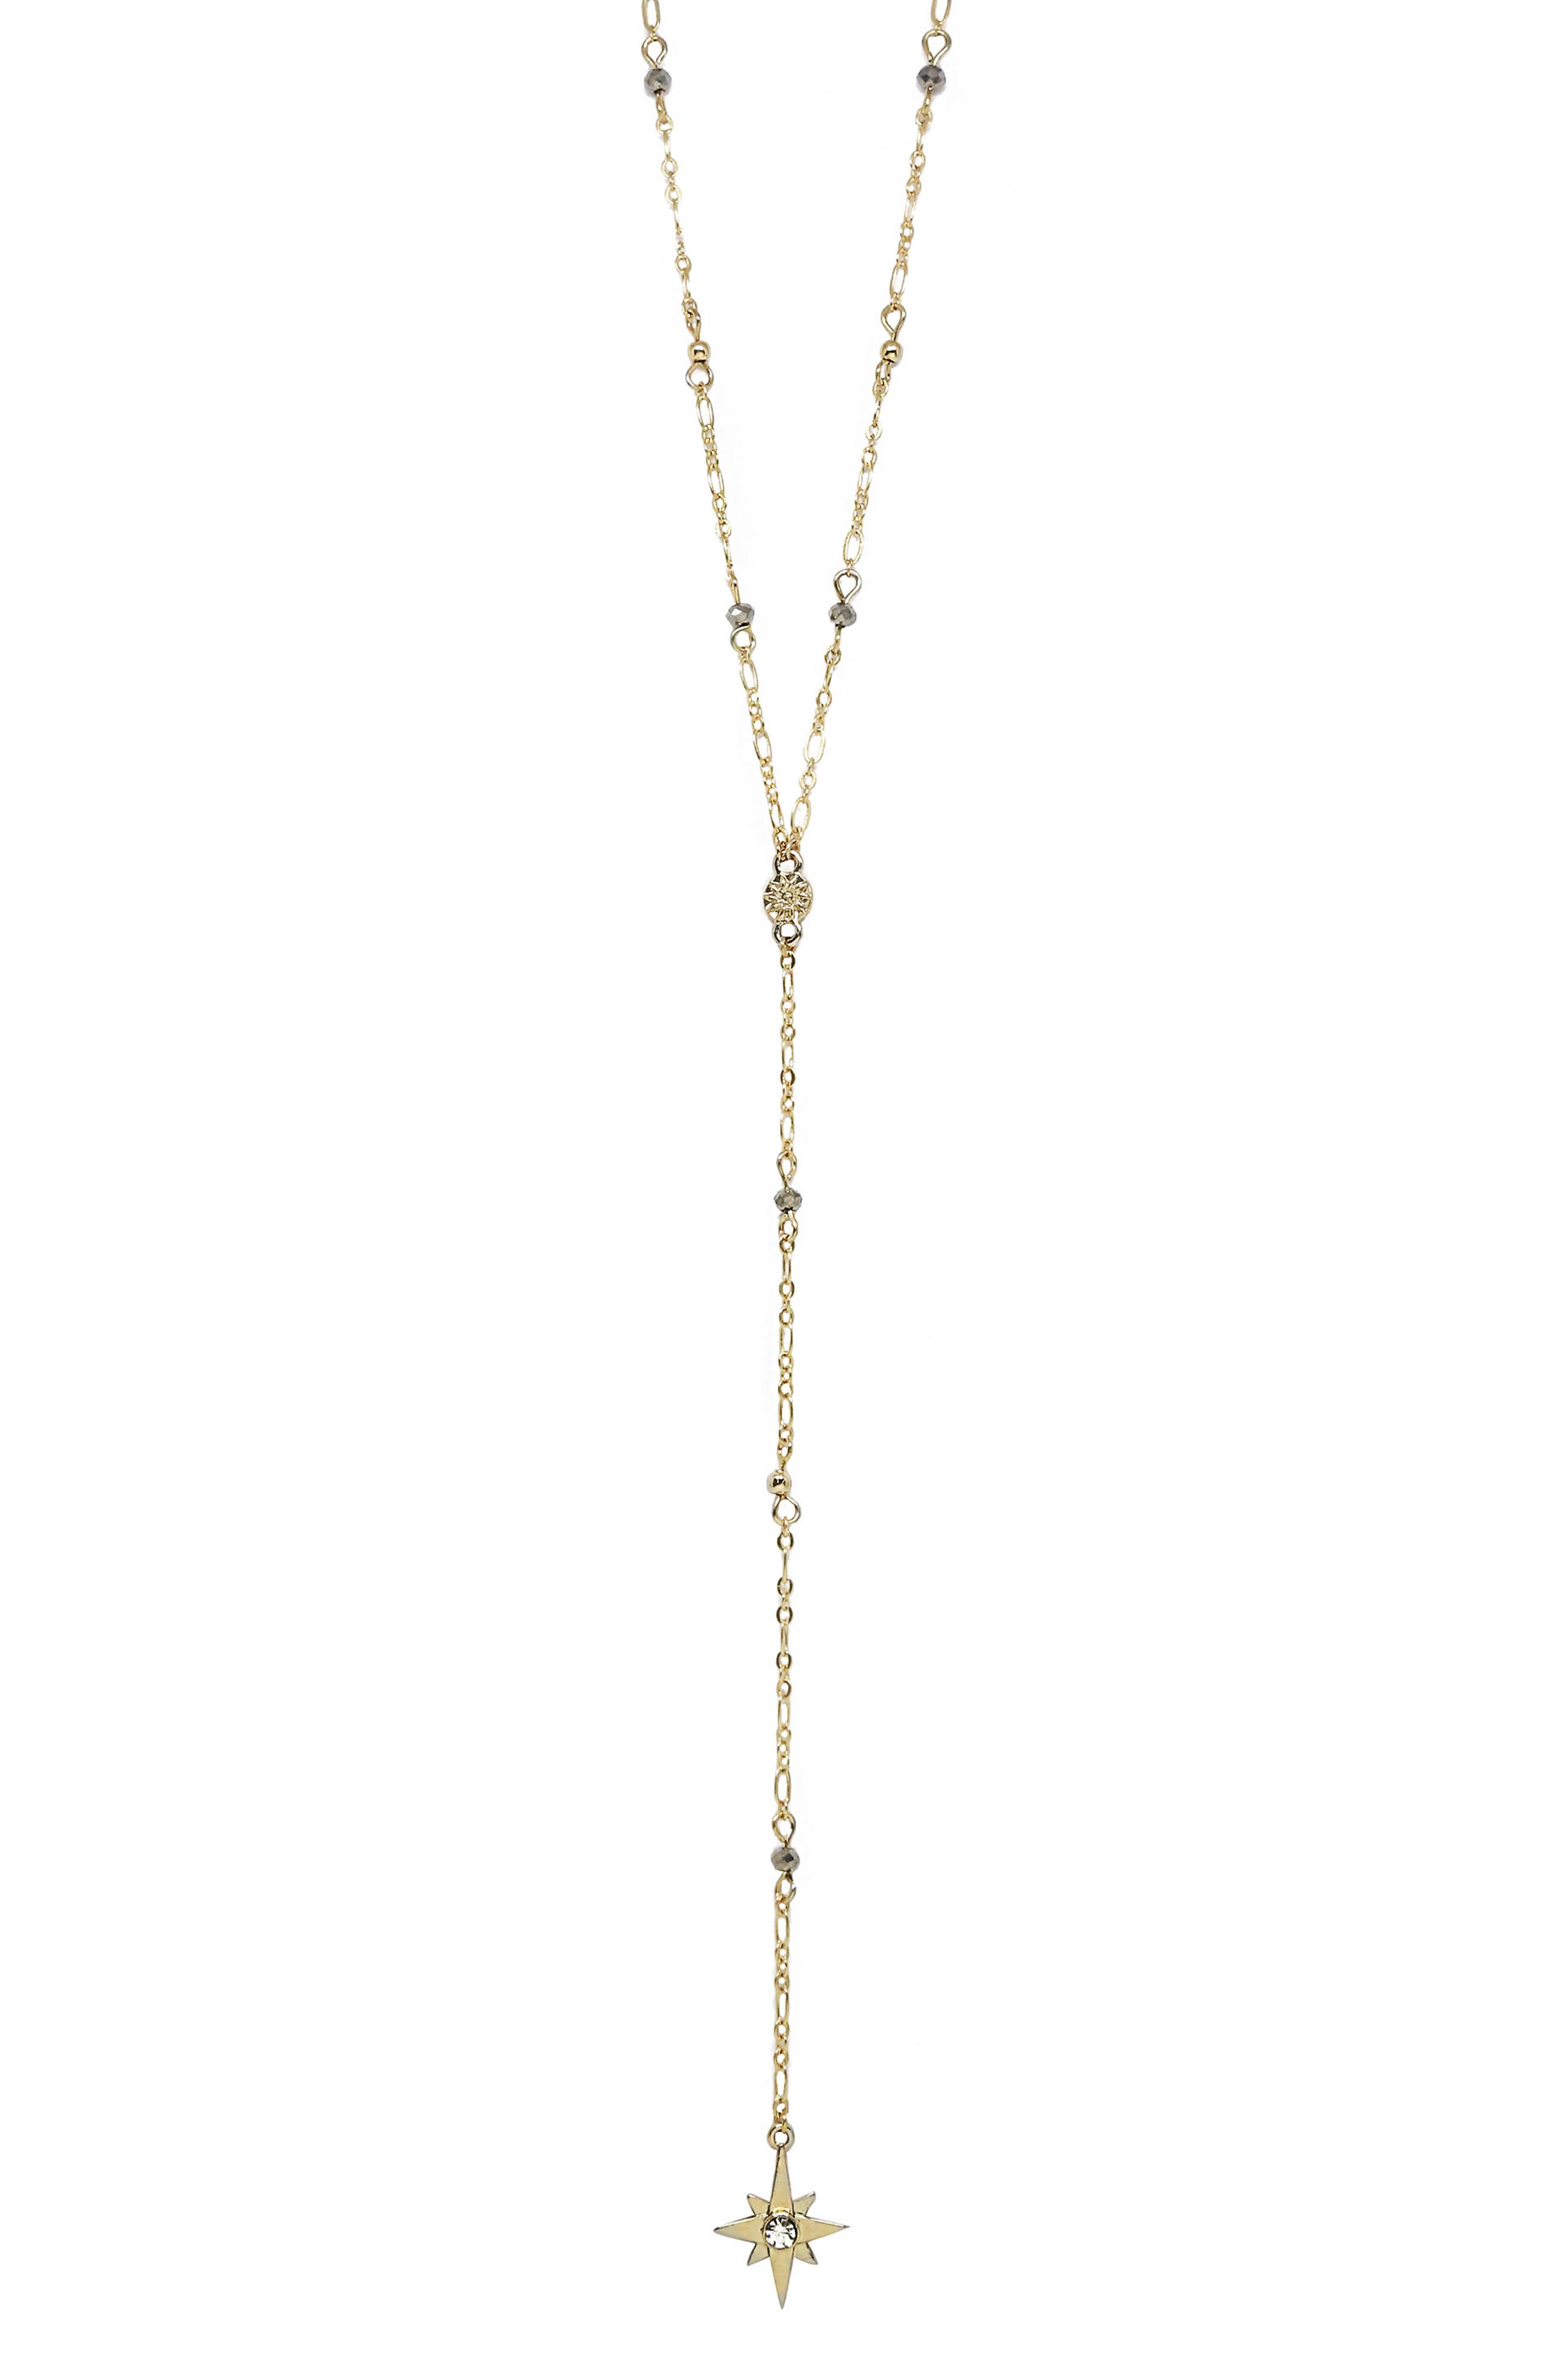 Chain Lariat Necklace,                         Main,                         color, Gold